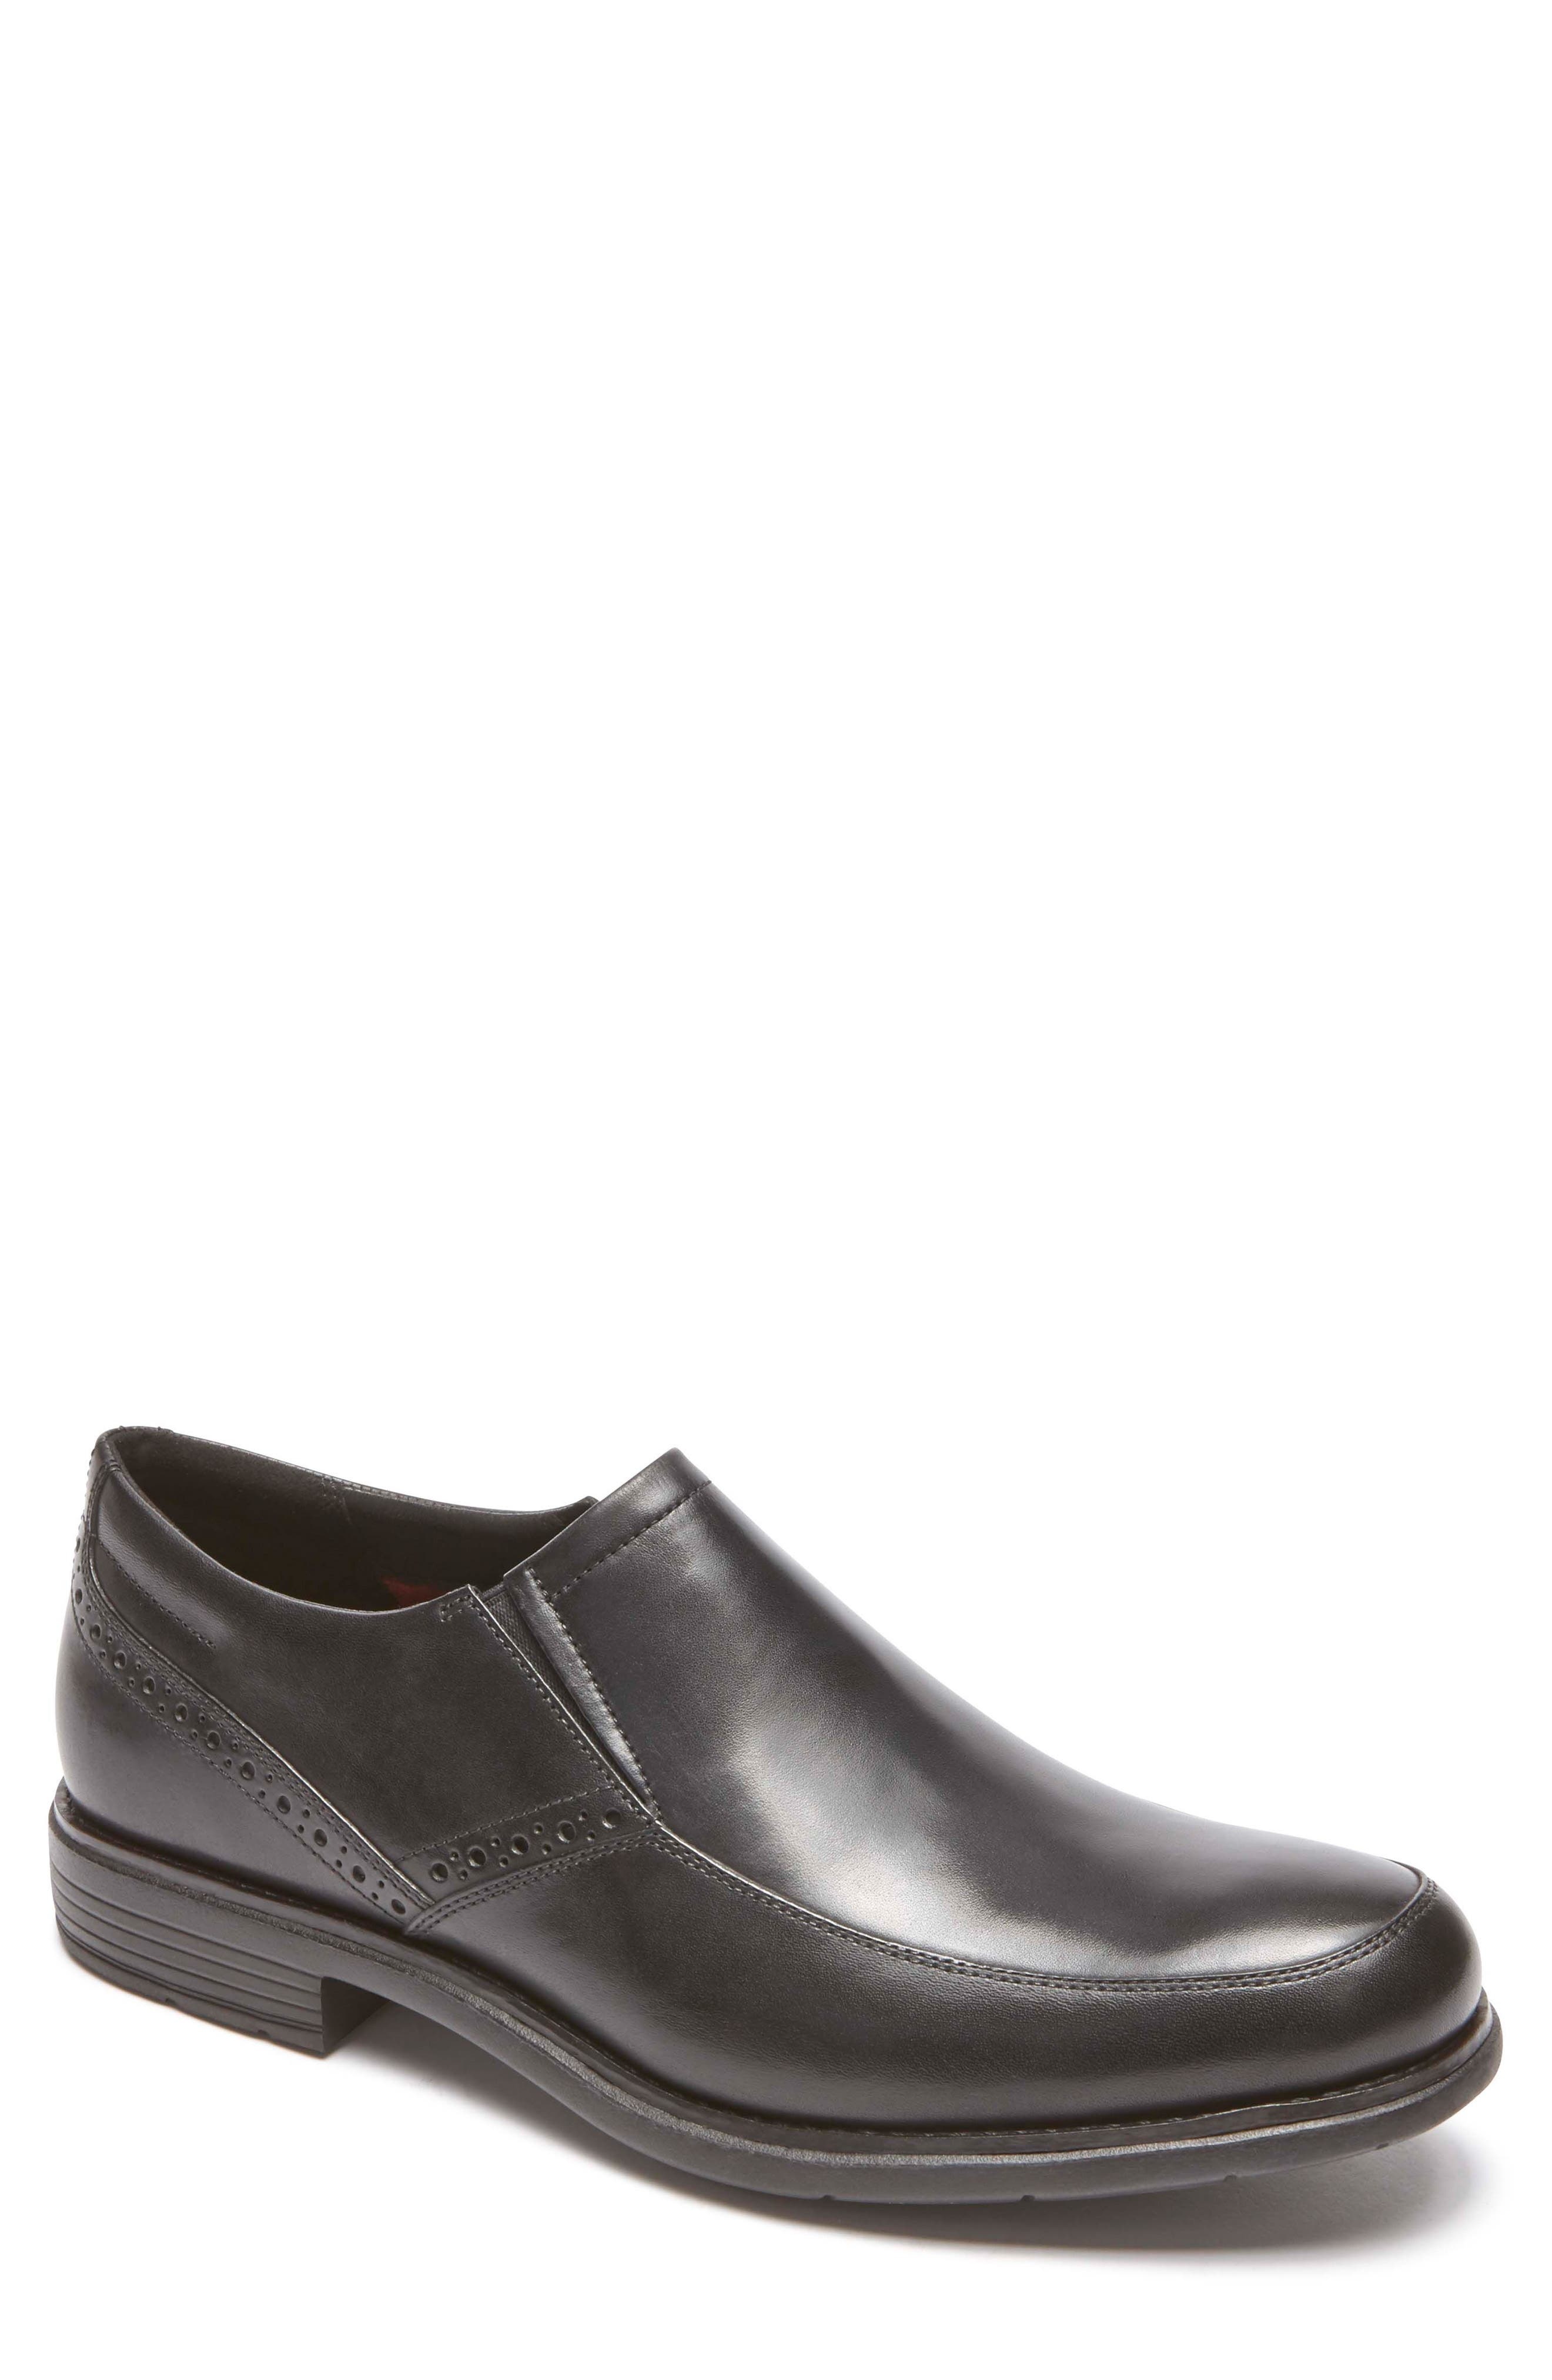 Total Motion Classic Dress Venetian Loafer,                         Main,                         color, 001